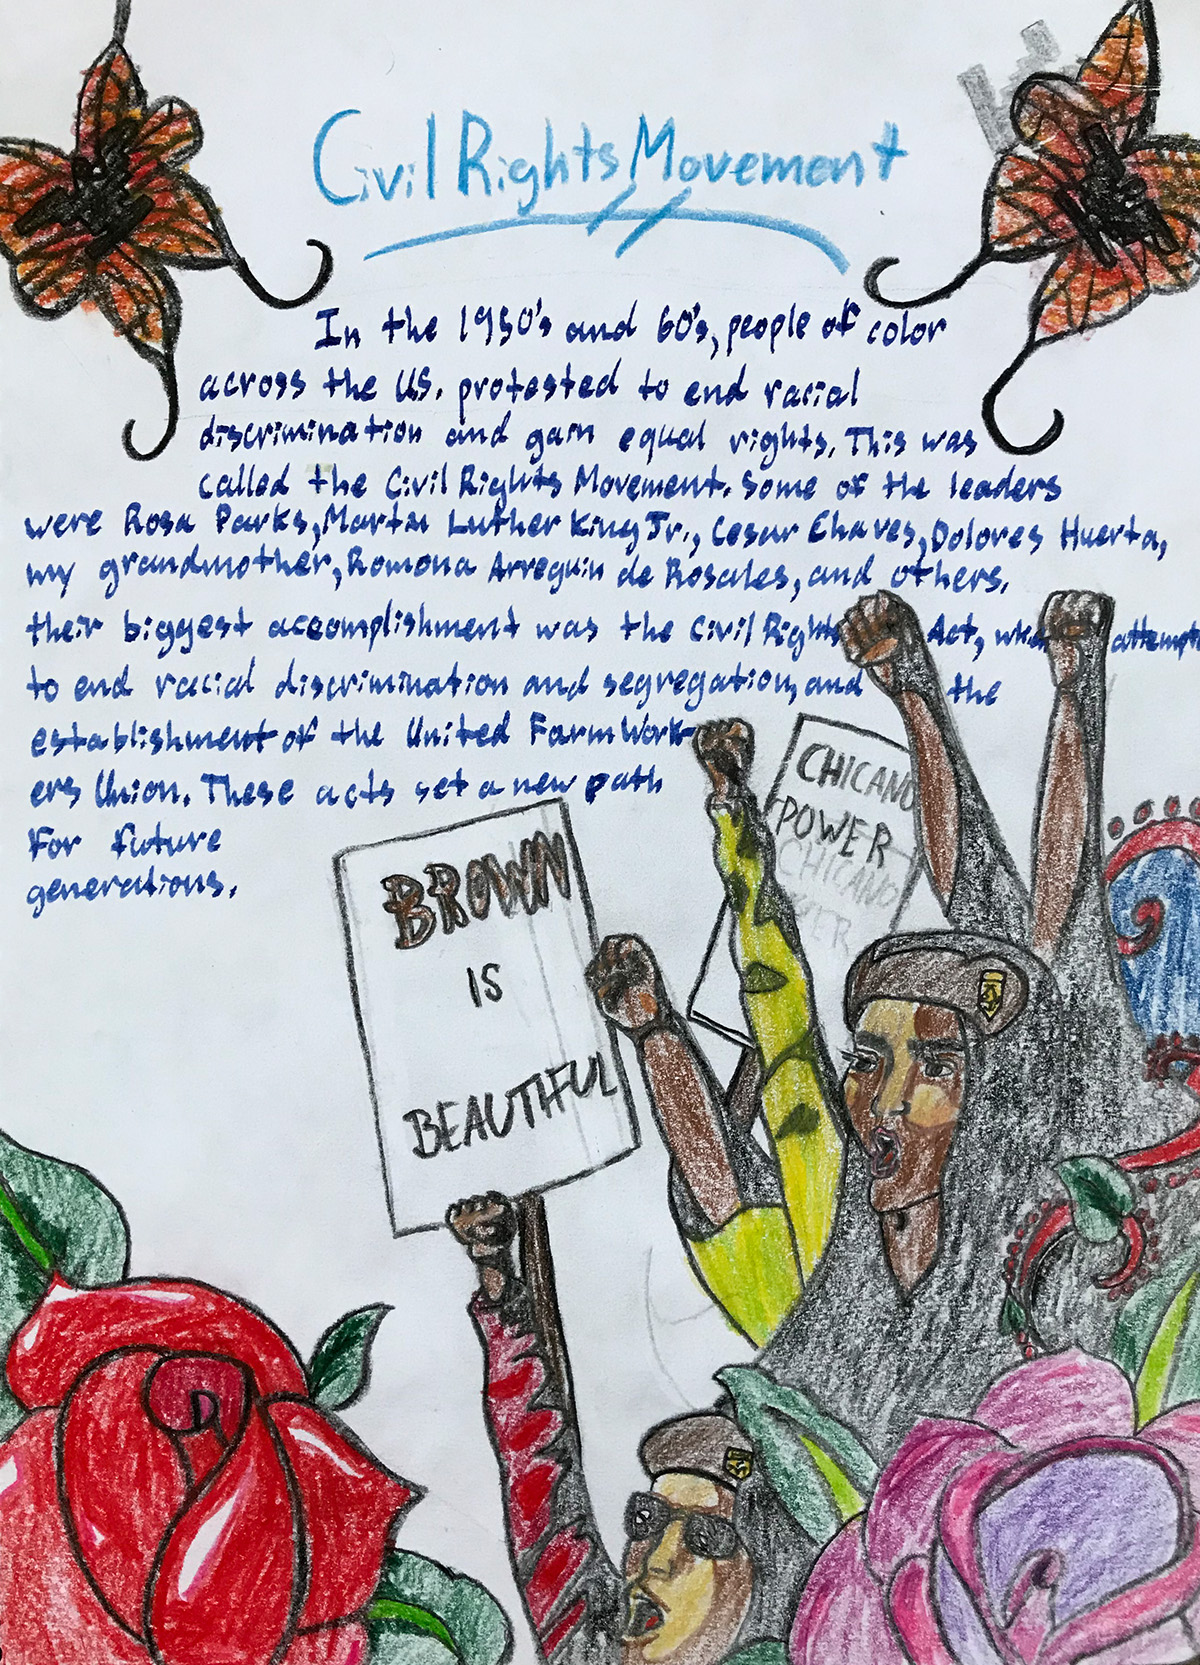 Beautiful Civil Rights lesson book page, handwritten and illustrated by an 8th grade student